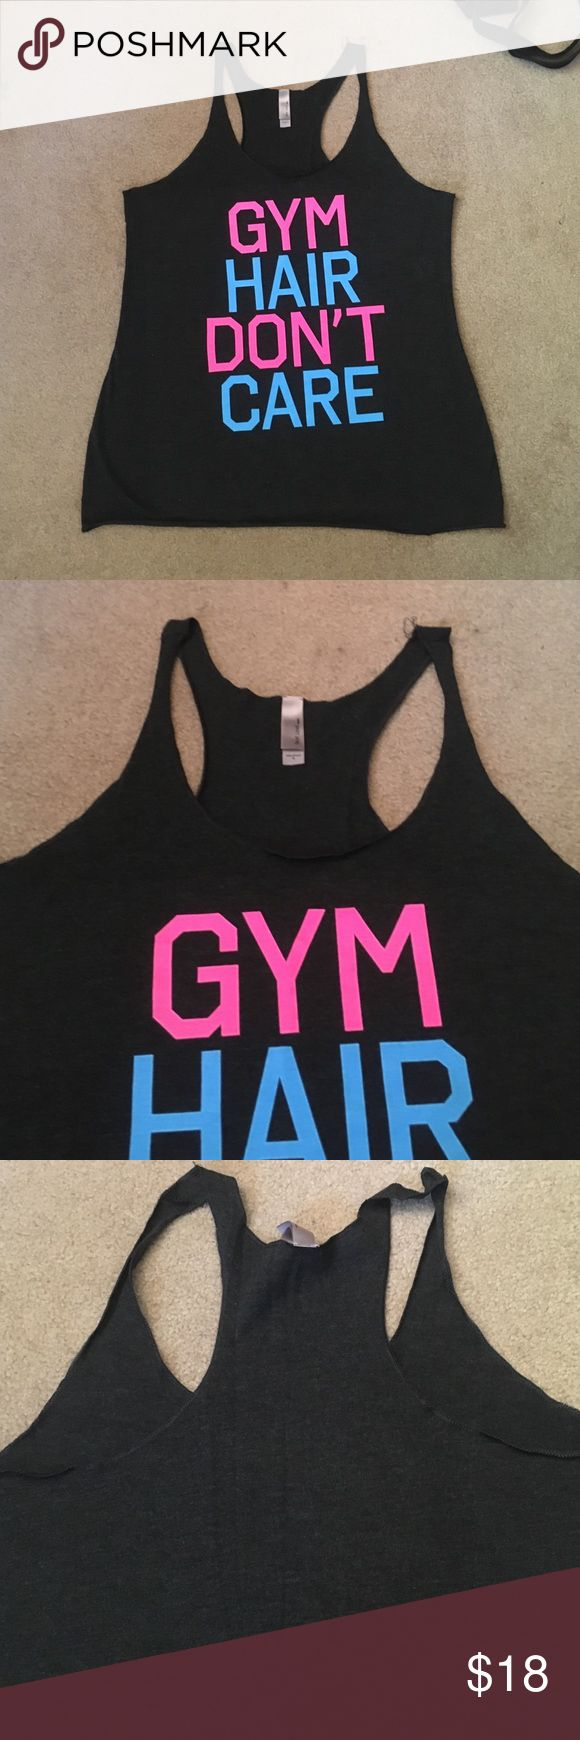 Grey gym hair don't care tank top Cute workout tank, only worn once. Has a couple loose threads at the top of one of the straps should be easy to sew down or trim. Lightweight and perfect for working out. 50% polyester, 25% cotton, 25% rayon. Tops Tank Tops